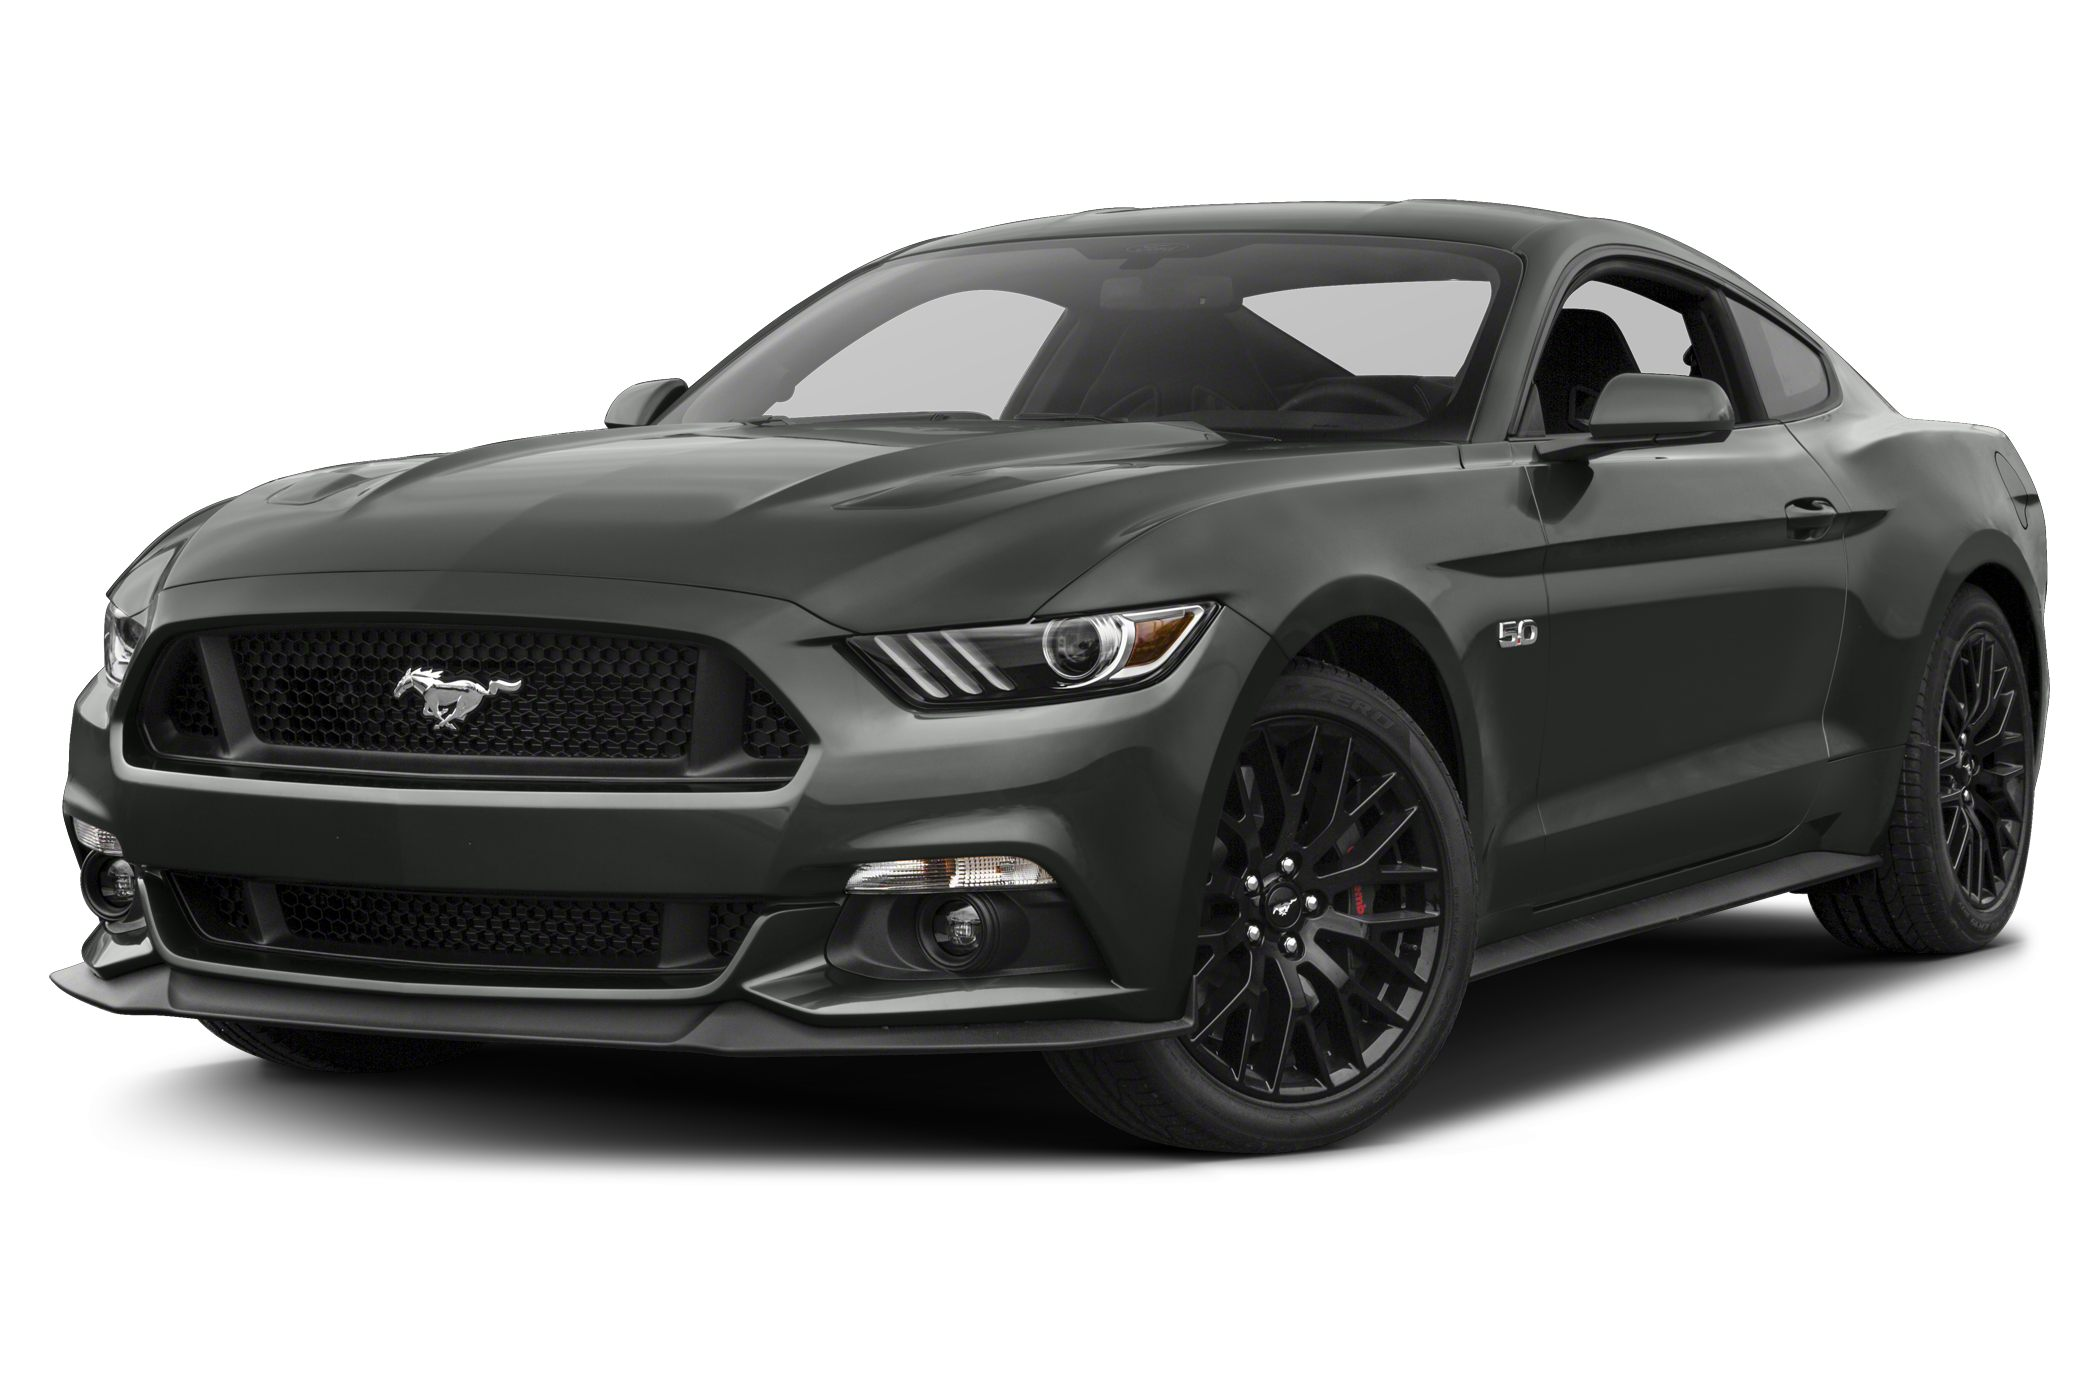 2015 Ford Mustang EcoBoost Coupe for sale in Christiansburg for $35,600 with 12 miles